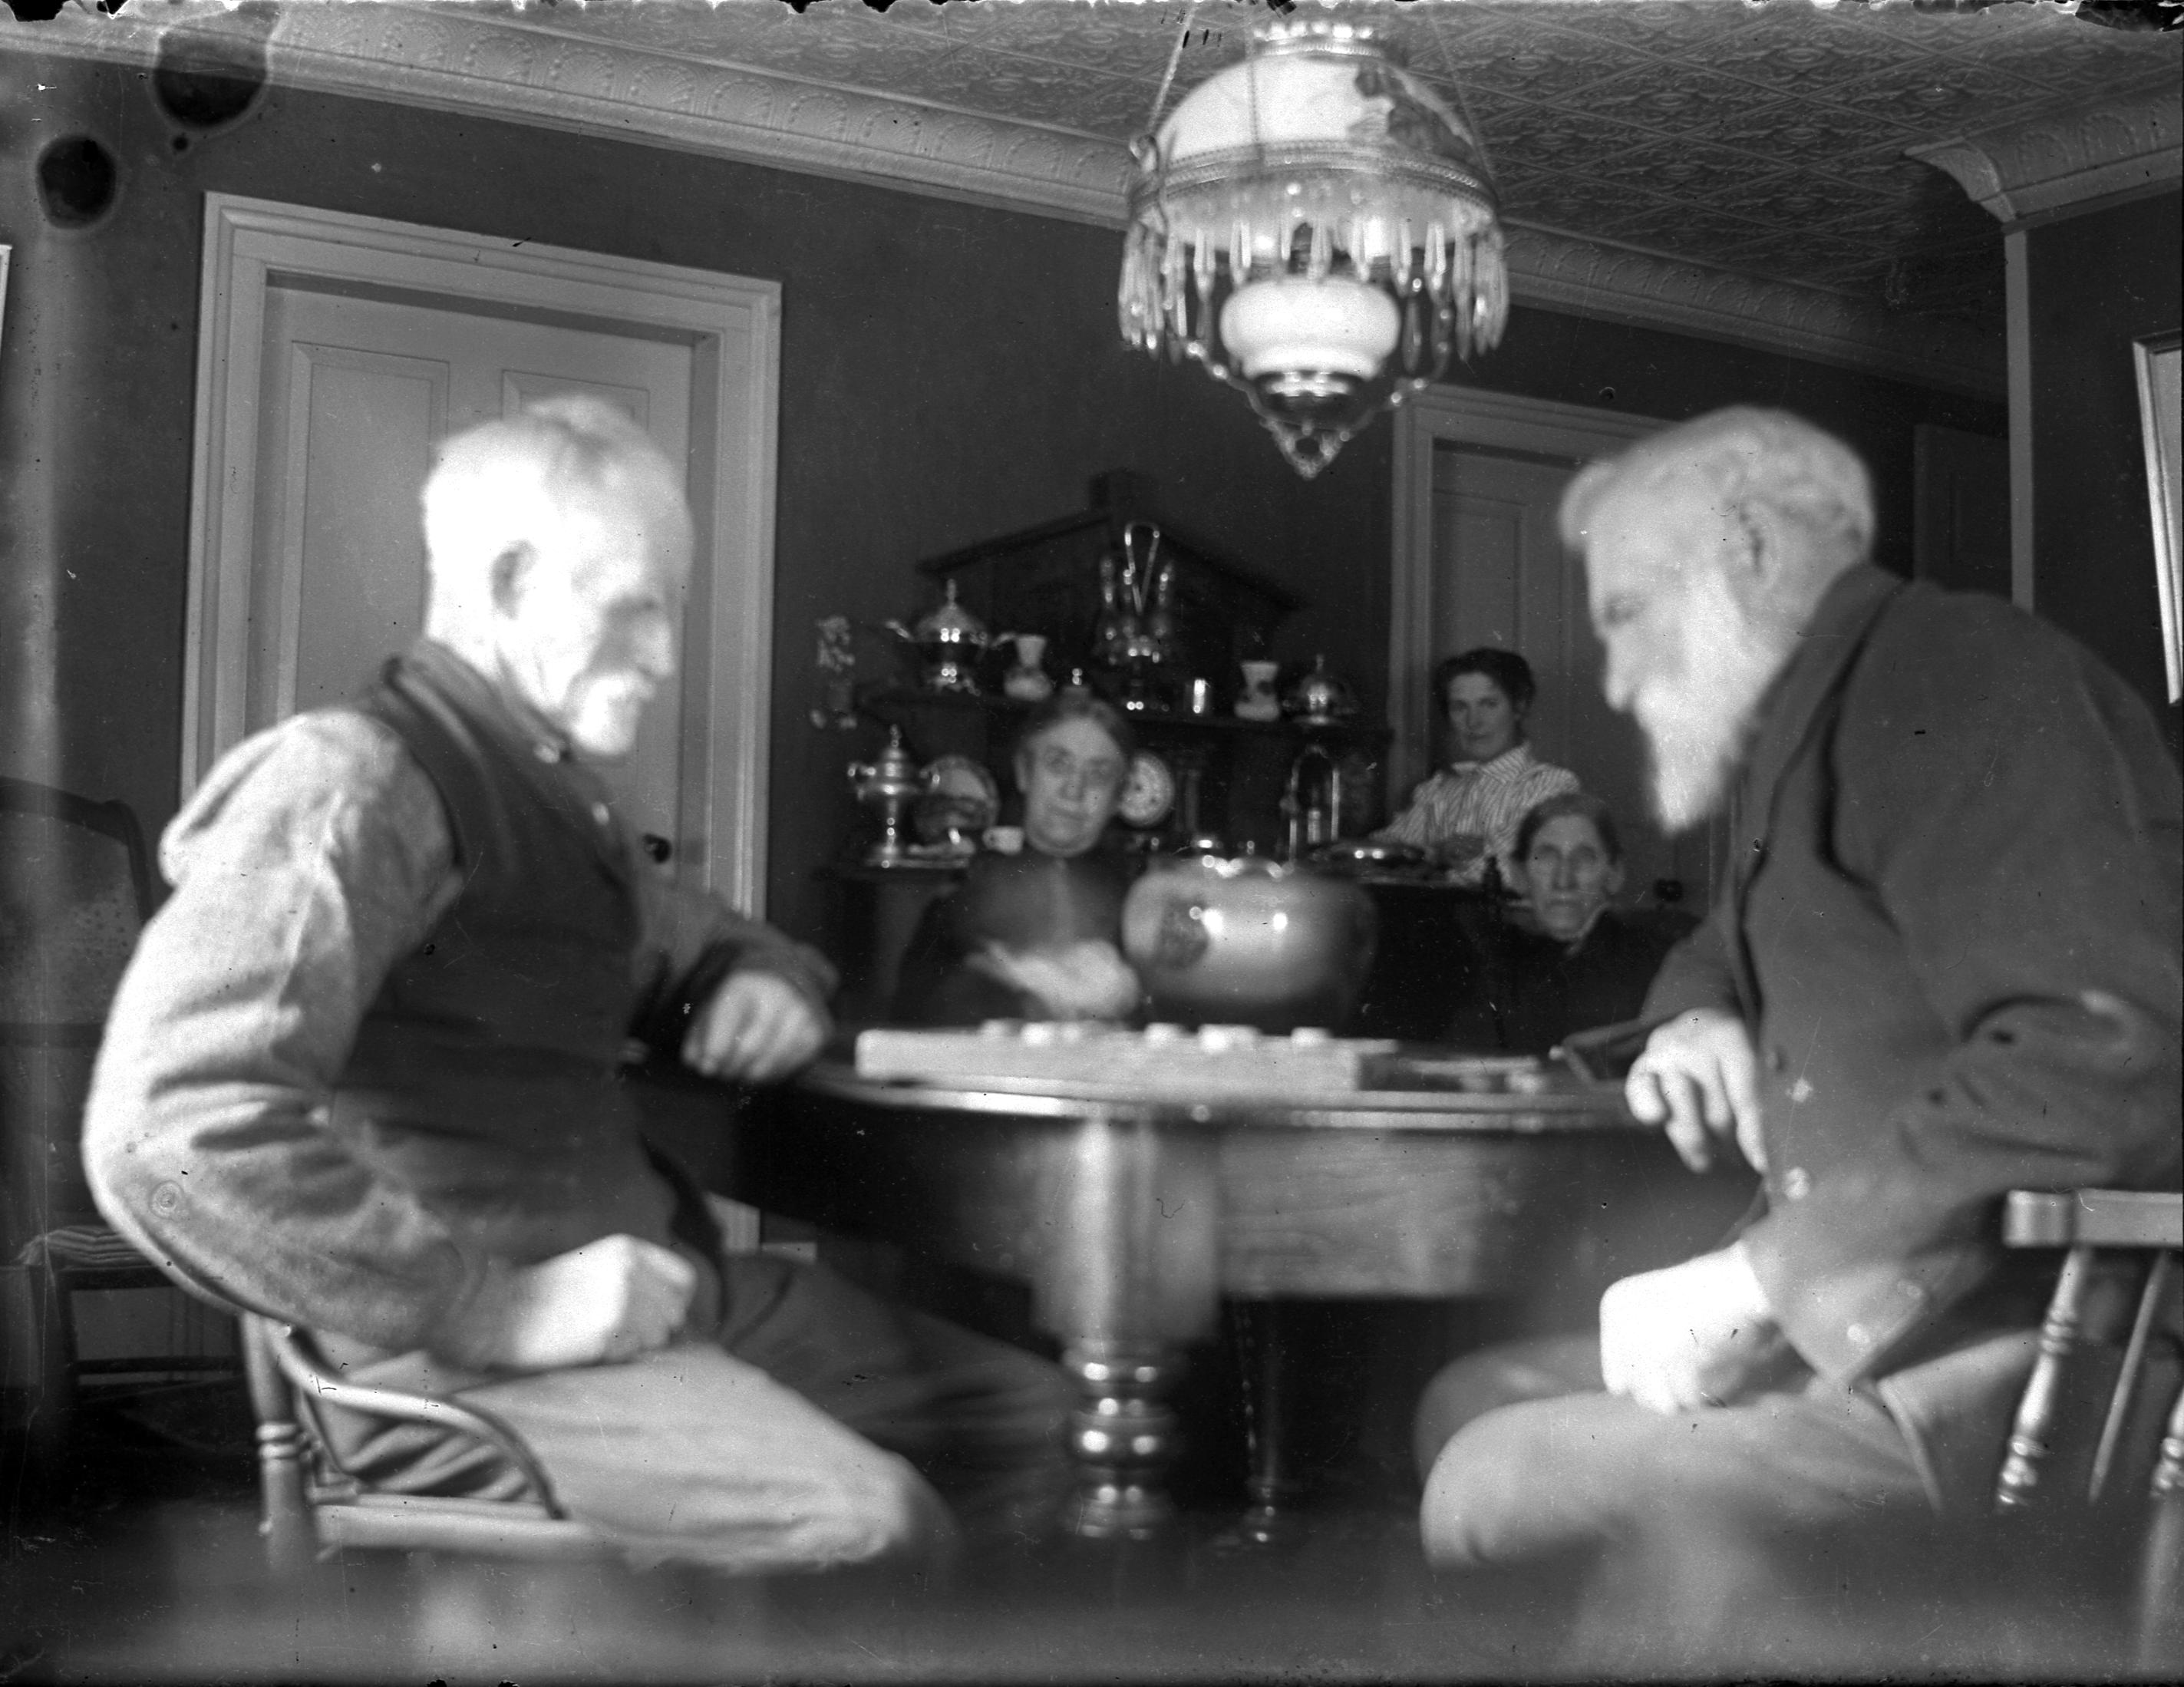 Peter McLeod and friend John MacDonald playing checkers, 1890